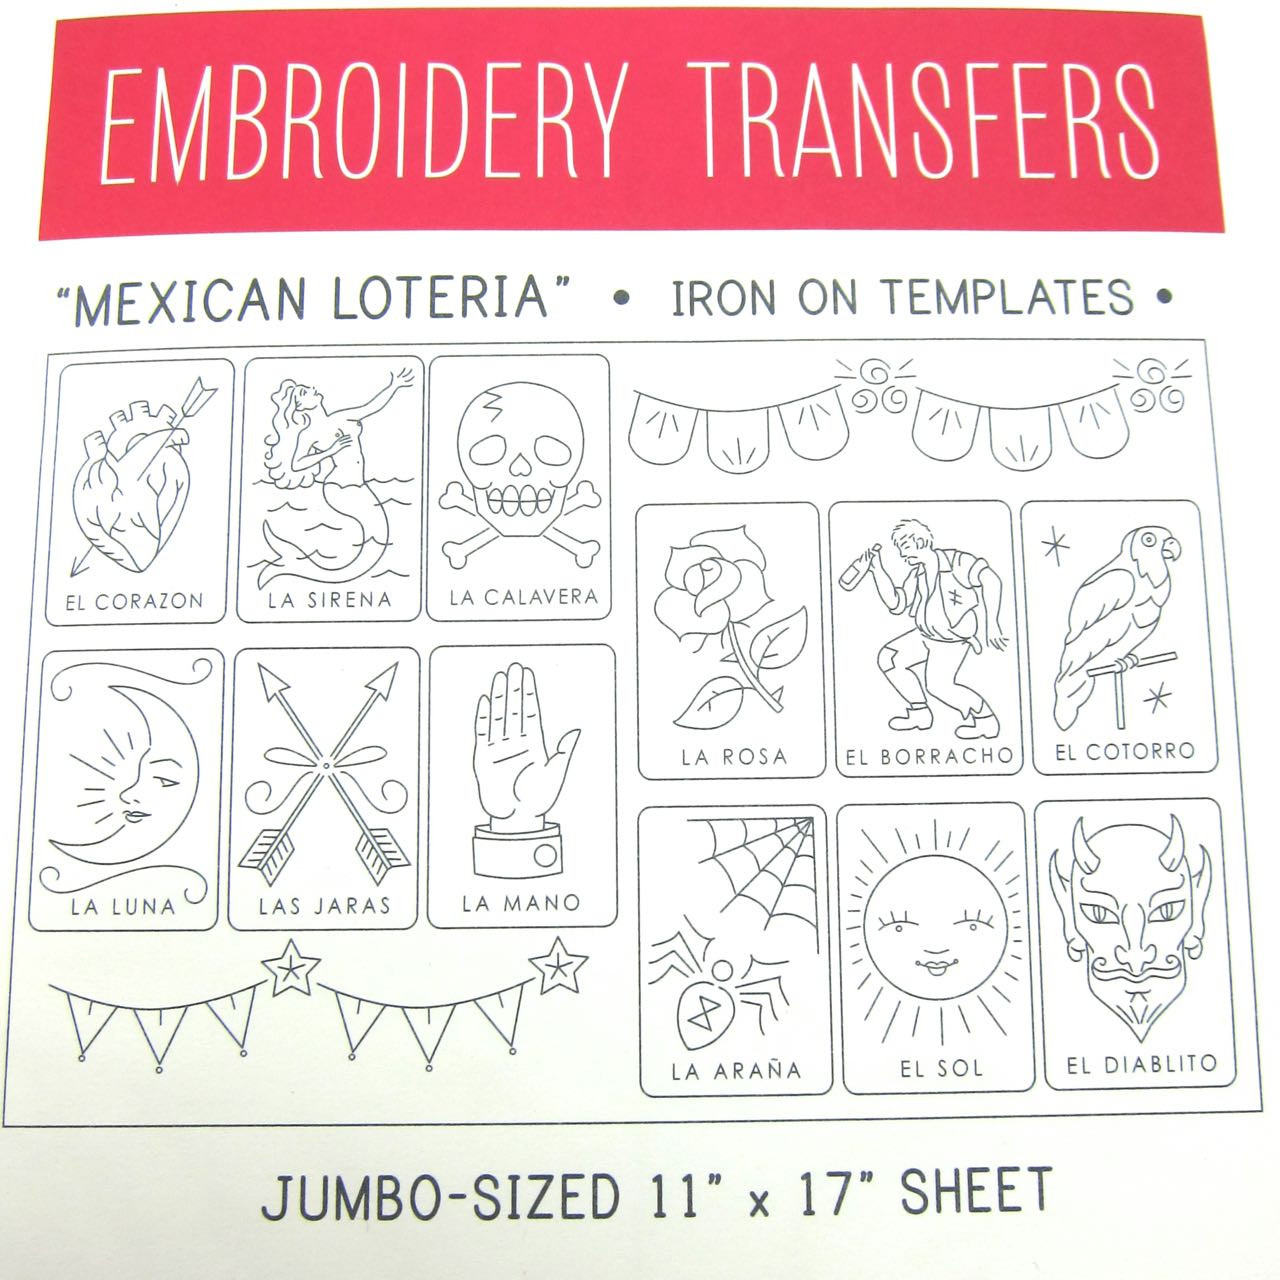 26c53baf2a2 Sublime Stitching-The BIG Sheet- MEXICAN LOTERIA Embroidery Transfers  $9.95/each